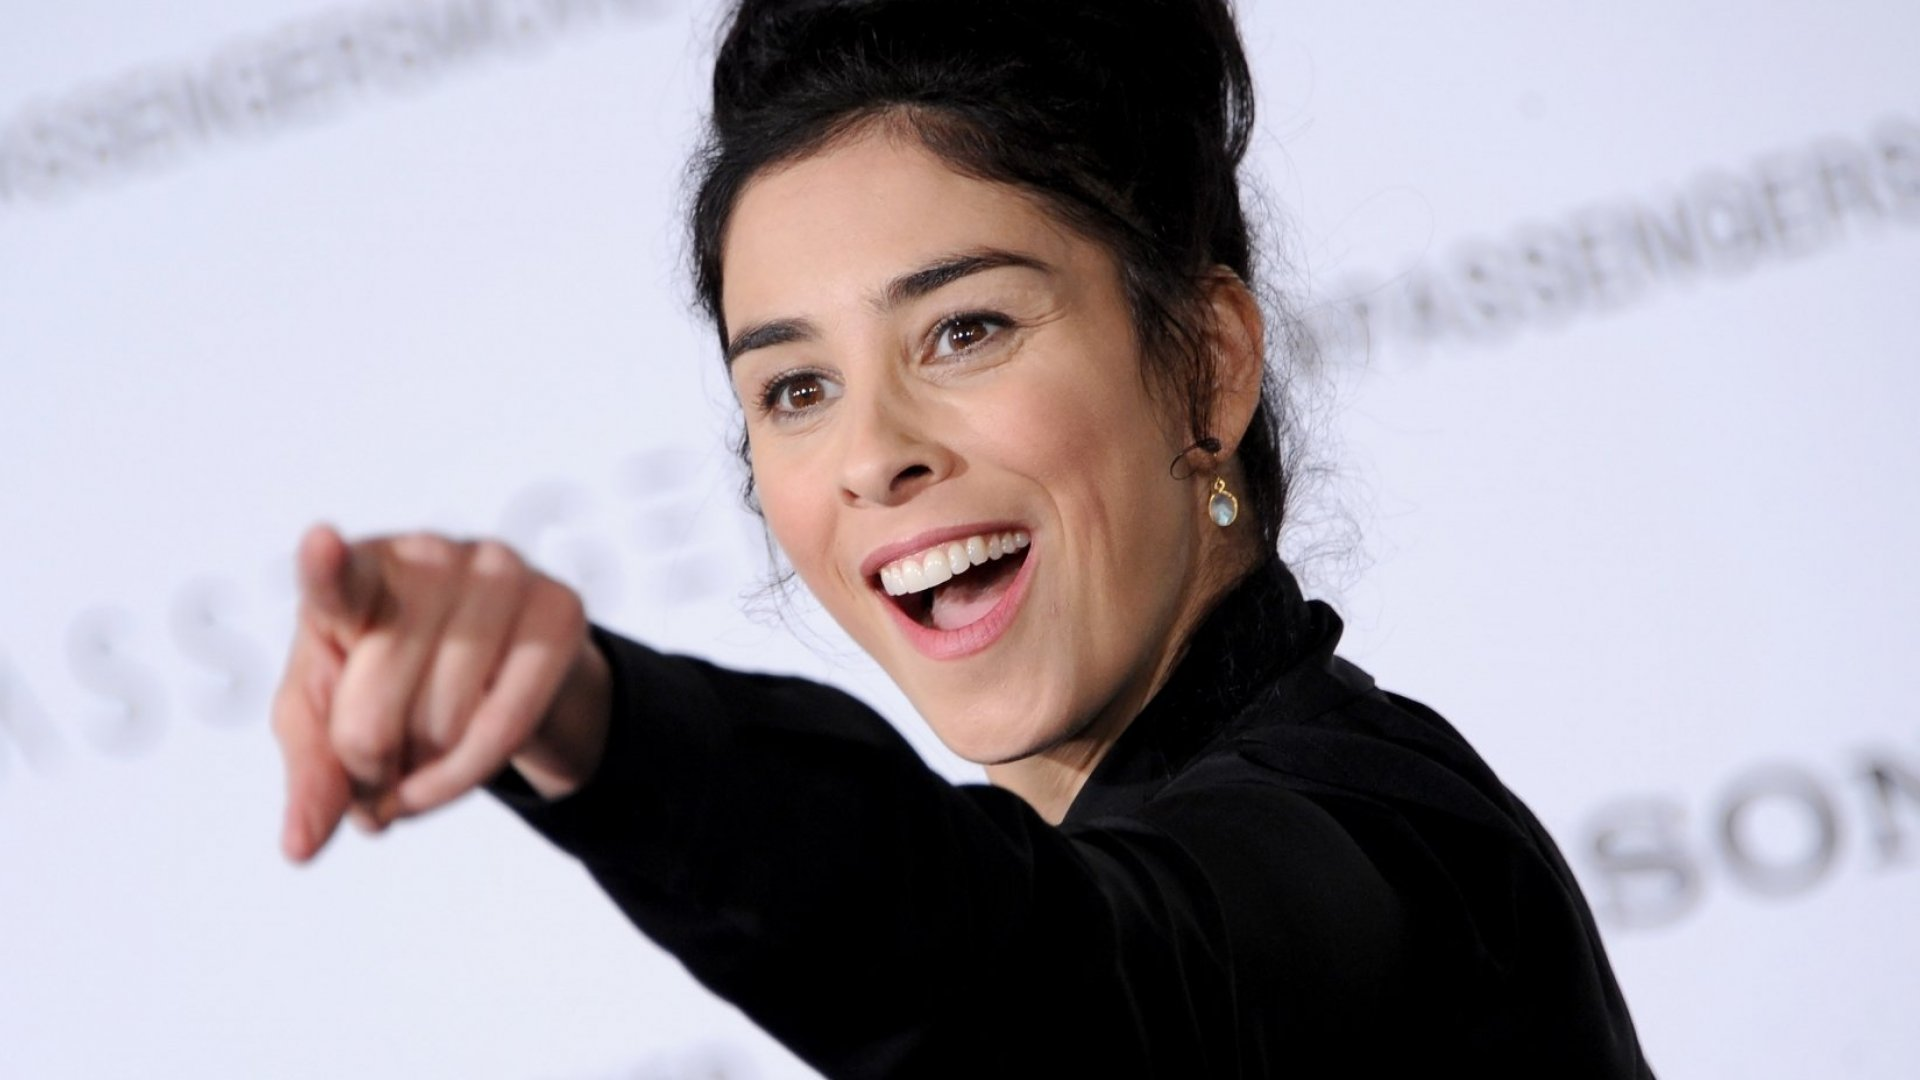 People Can't Stop Talking About How Sarah Silverman Handled a Twitter Troll. (It's a Master Class in Emotional Intelligence)